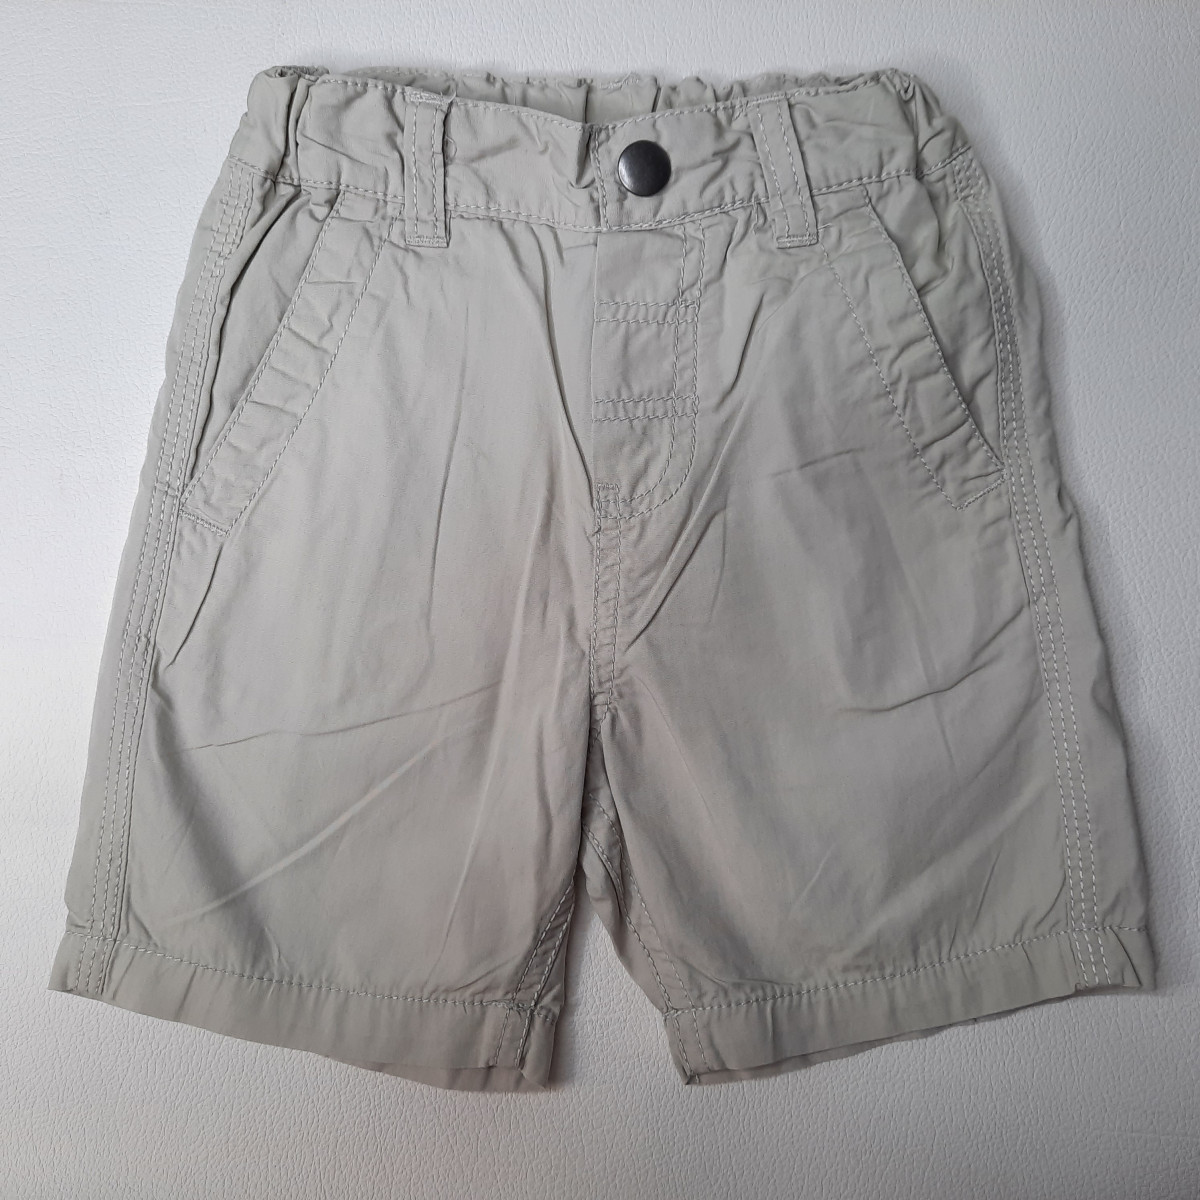 Shorts, Bermudas - photo 25